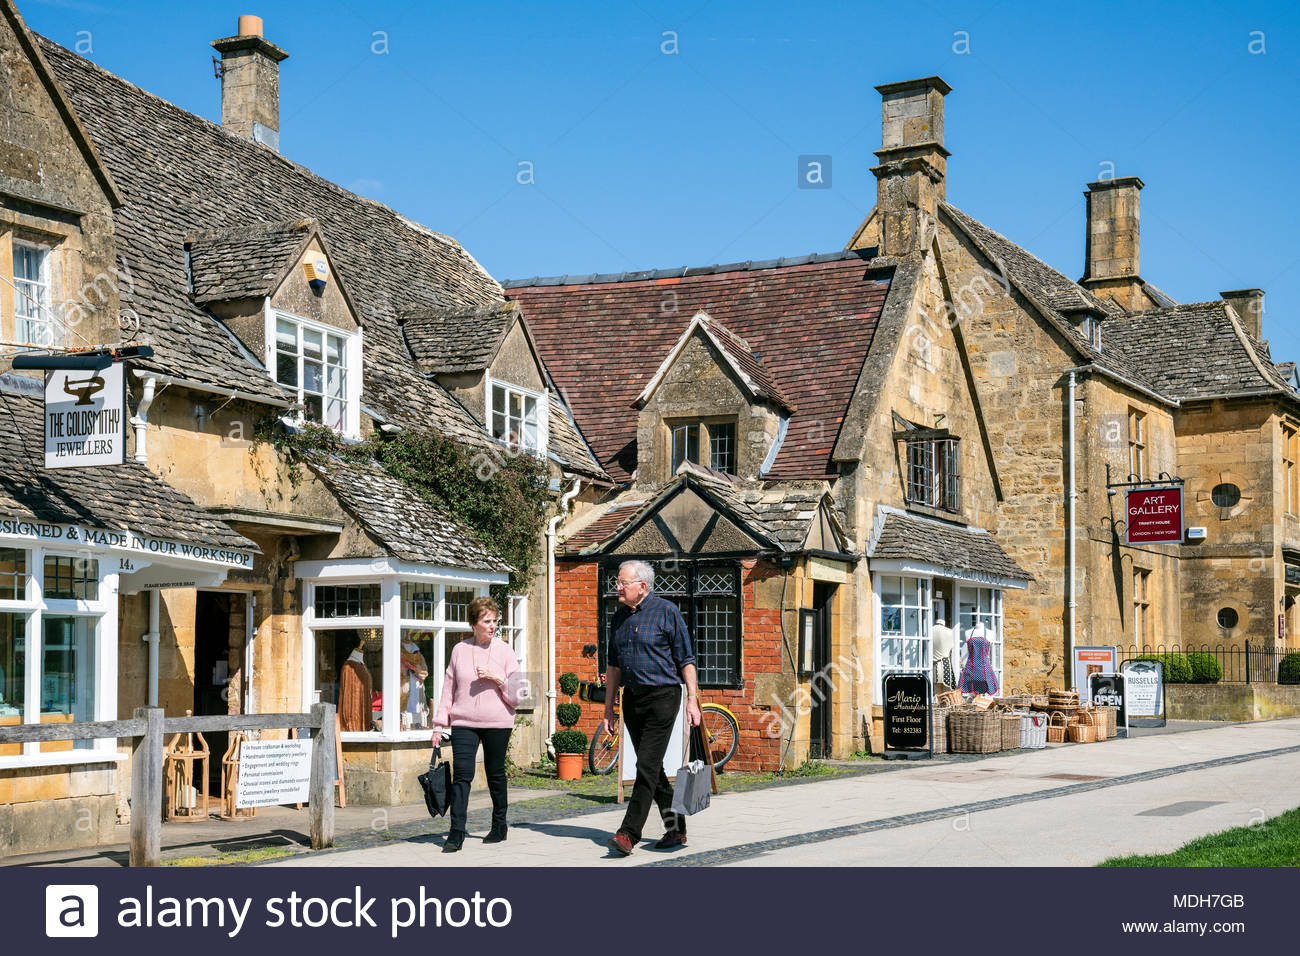 High Street, Broadway, Cotswolds on a sunny spring day with blue skies. - Stock Image